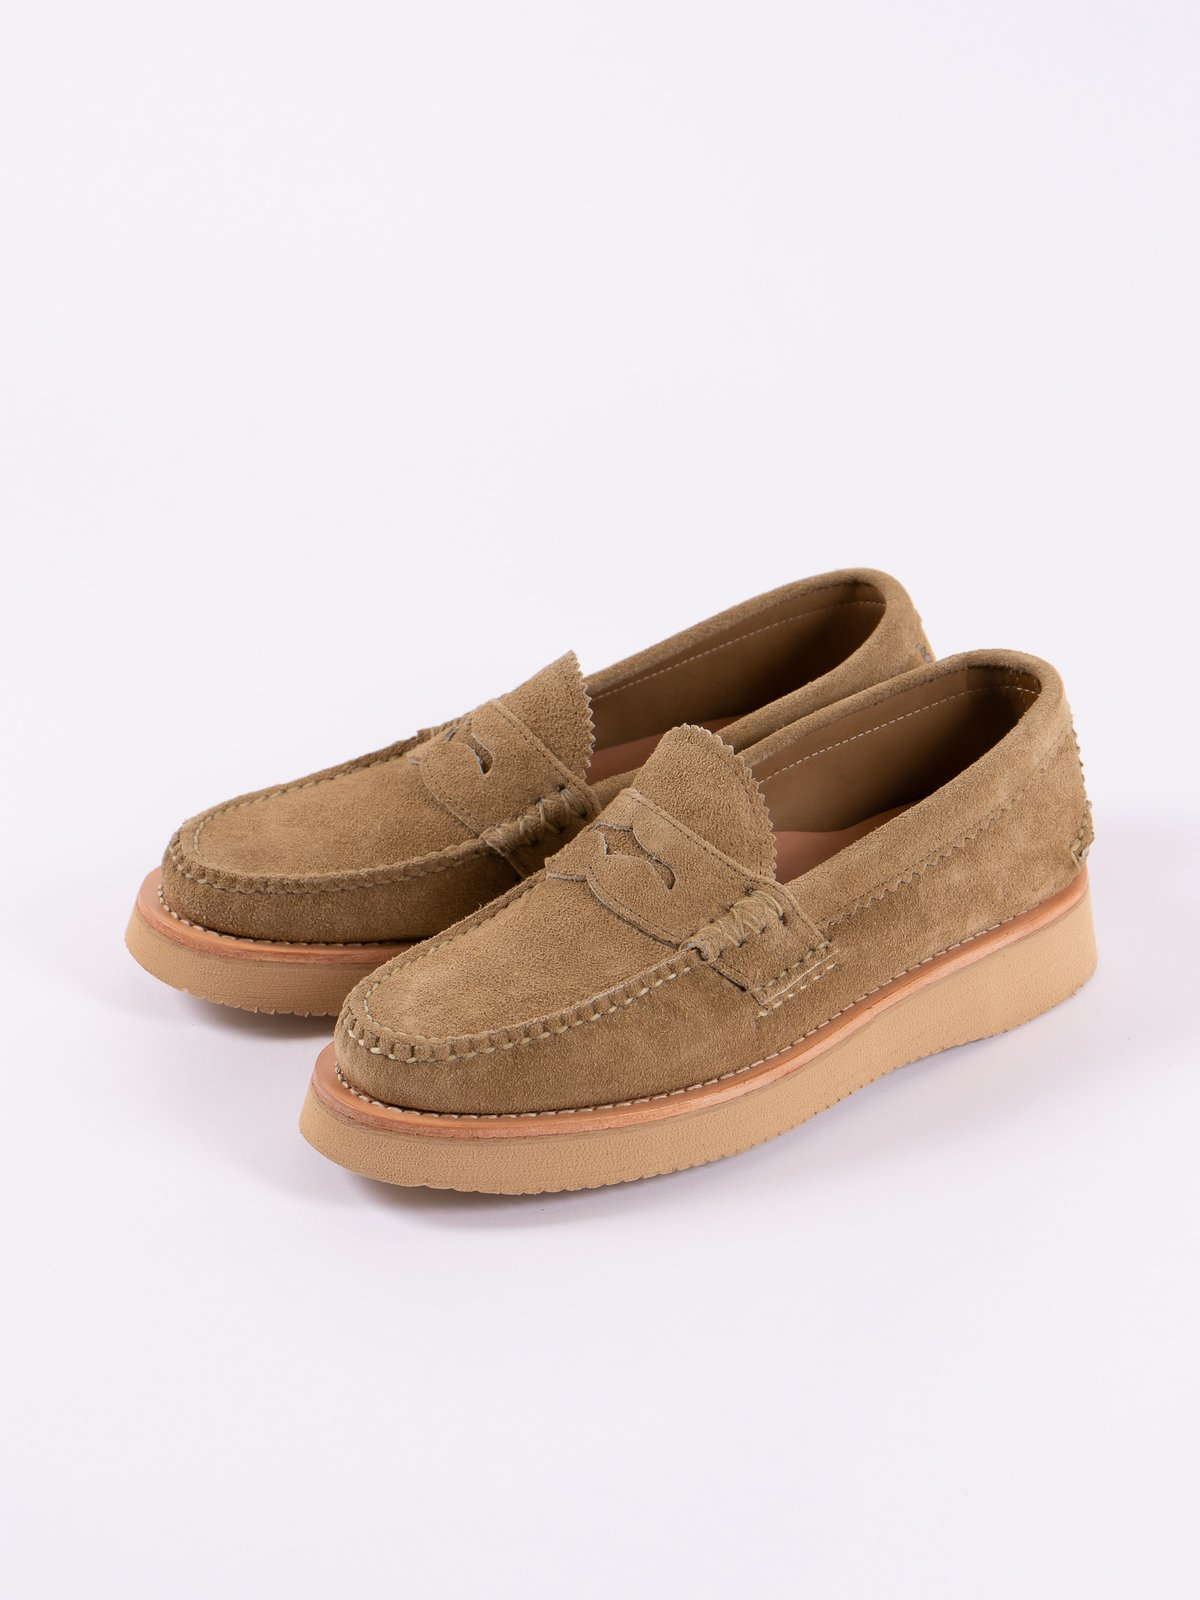 FO Khaki Loafer Shoe Exclusive - Image 2